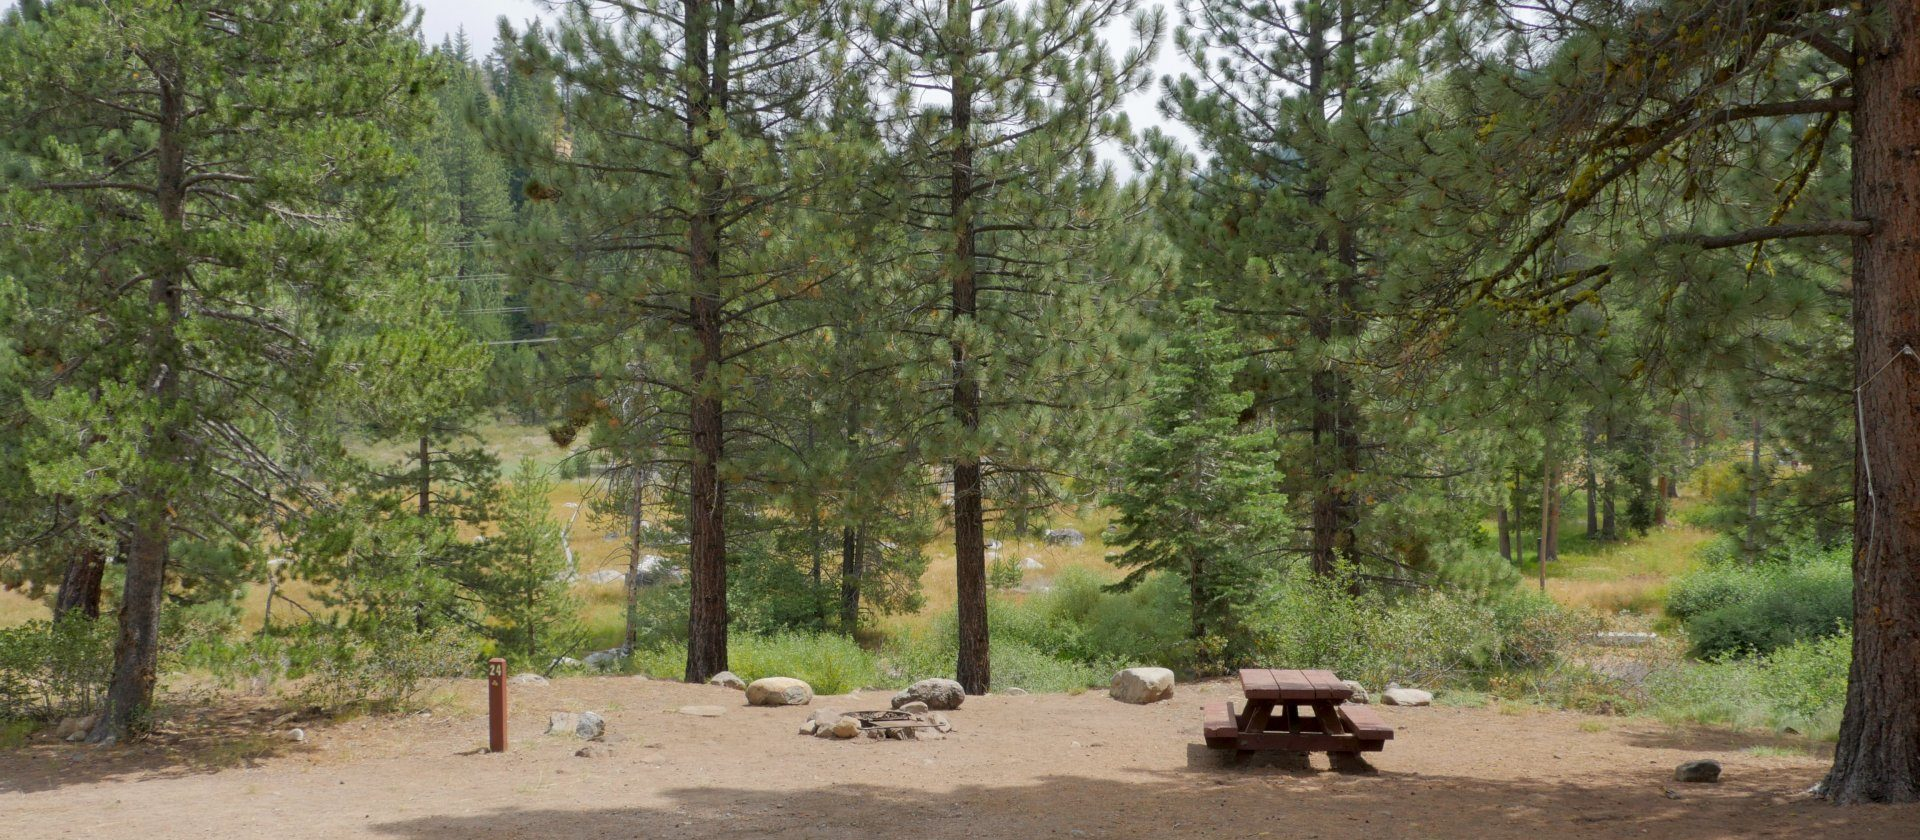 If privacy is important to you, be sure to book one of the more secluded sites available in Silver Creek.